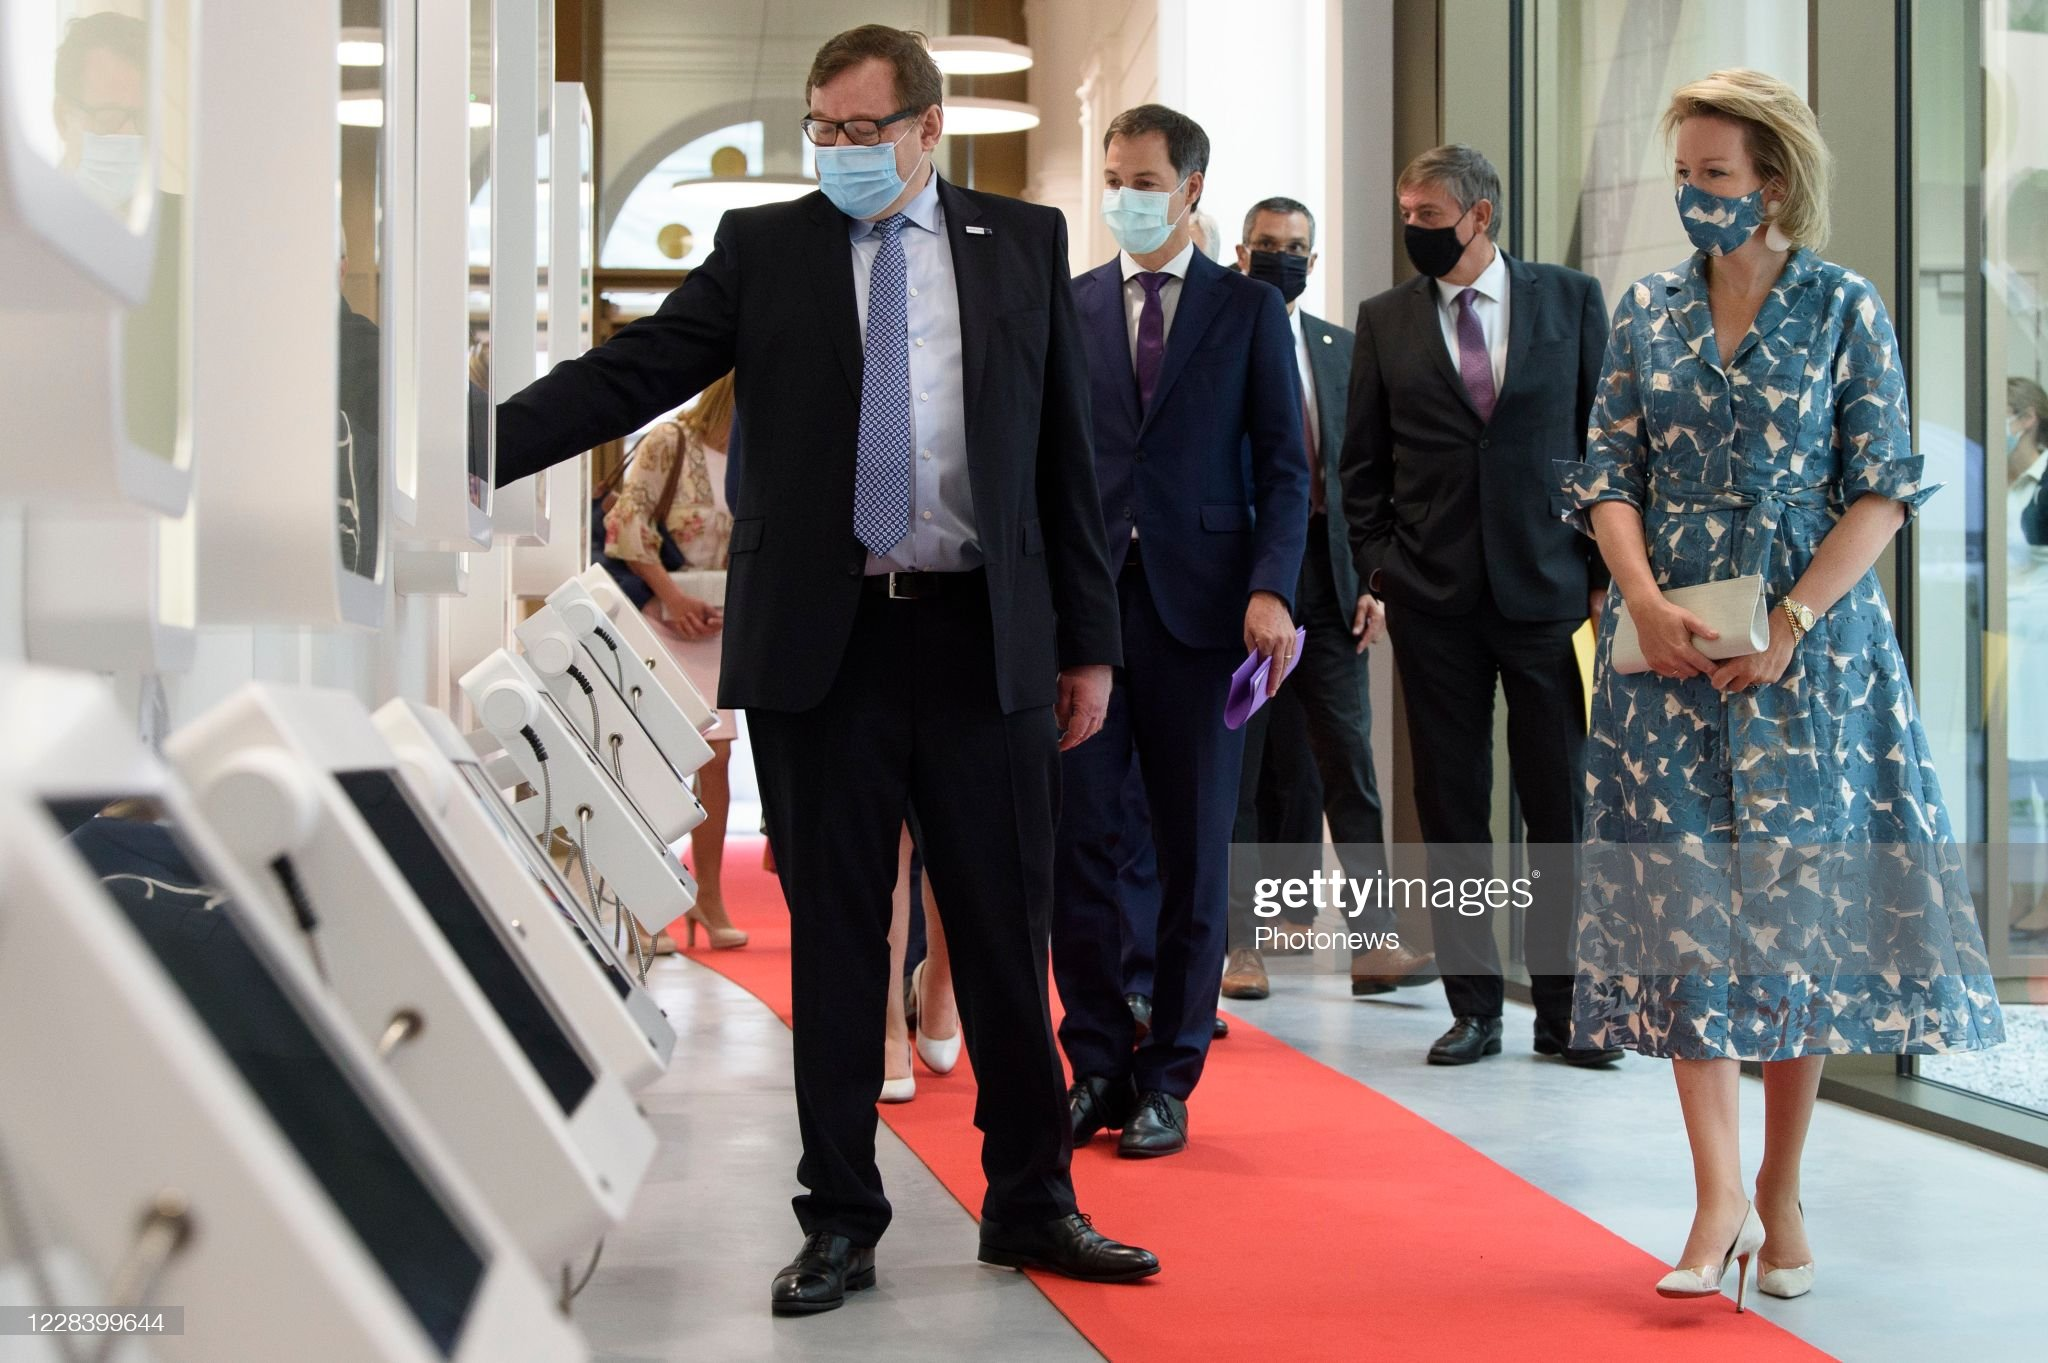 opening-of-the-new-wikifin-lab-in-the-presence-of-the-queen-mathilde-picture-id1228399644